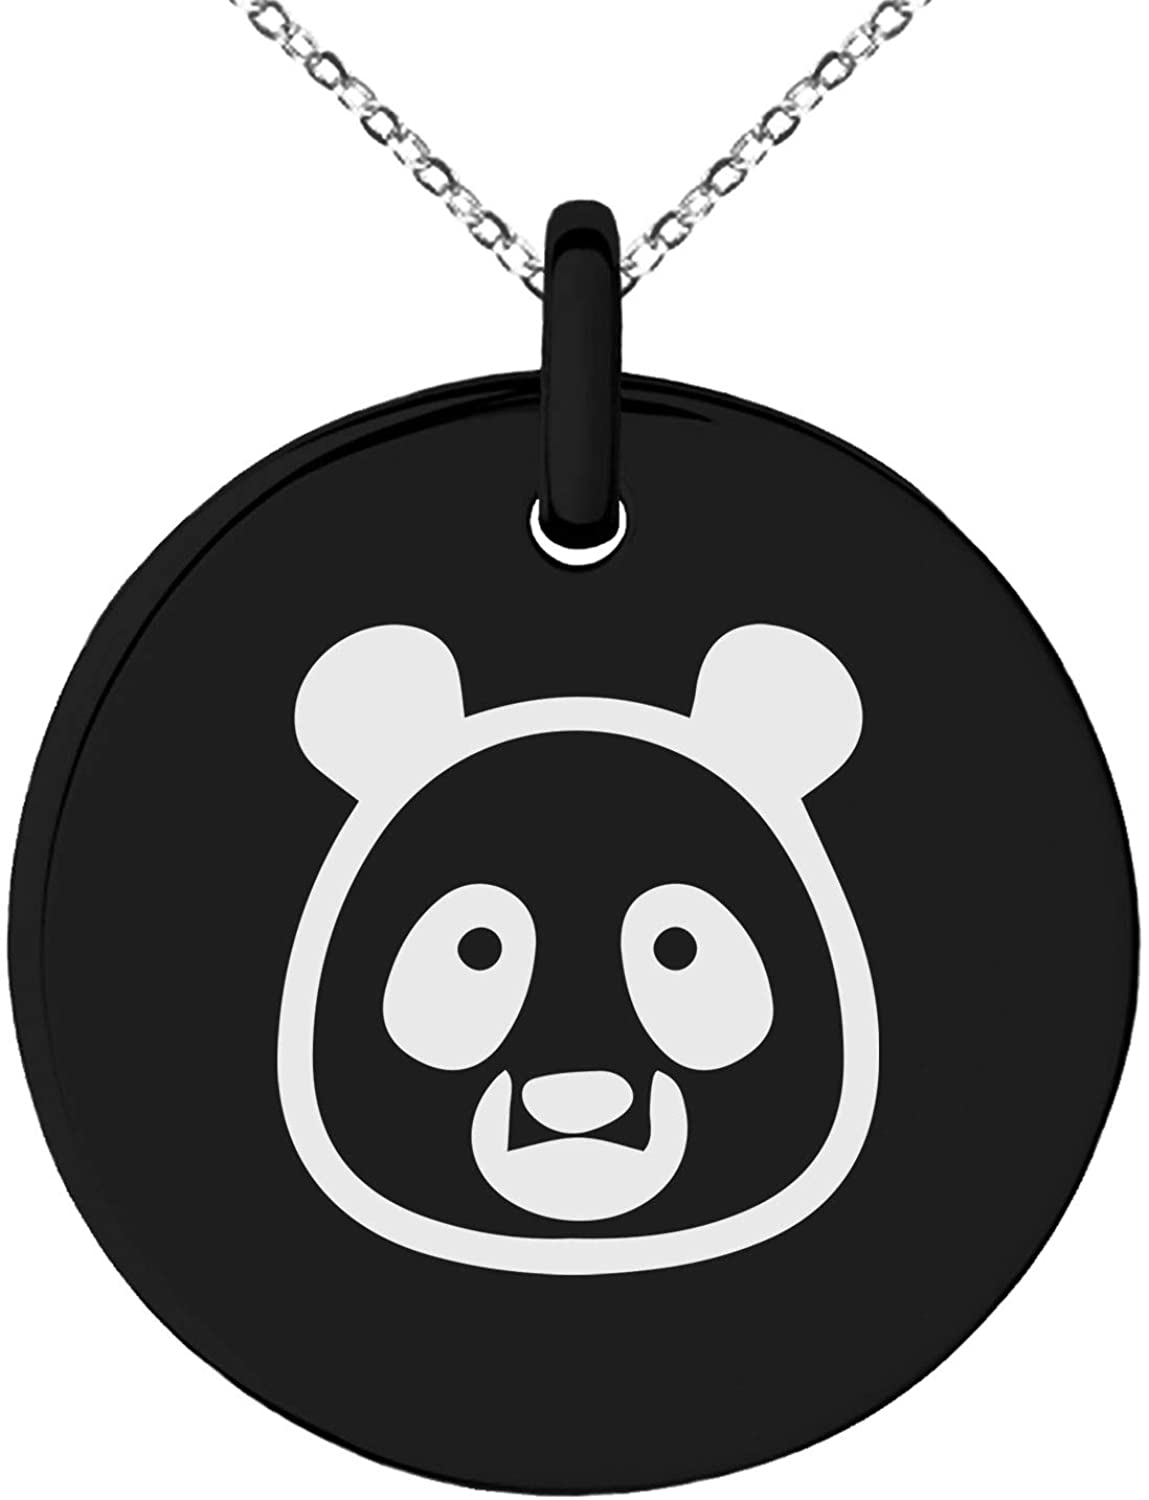 Tioneer Stainless Steel Panda Icon Small Medallion Circle Charm Pendant Necklace